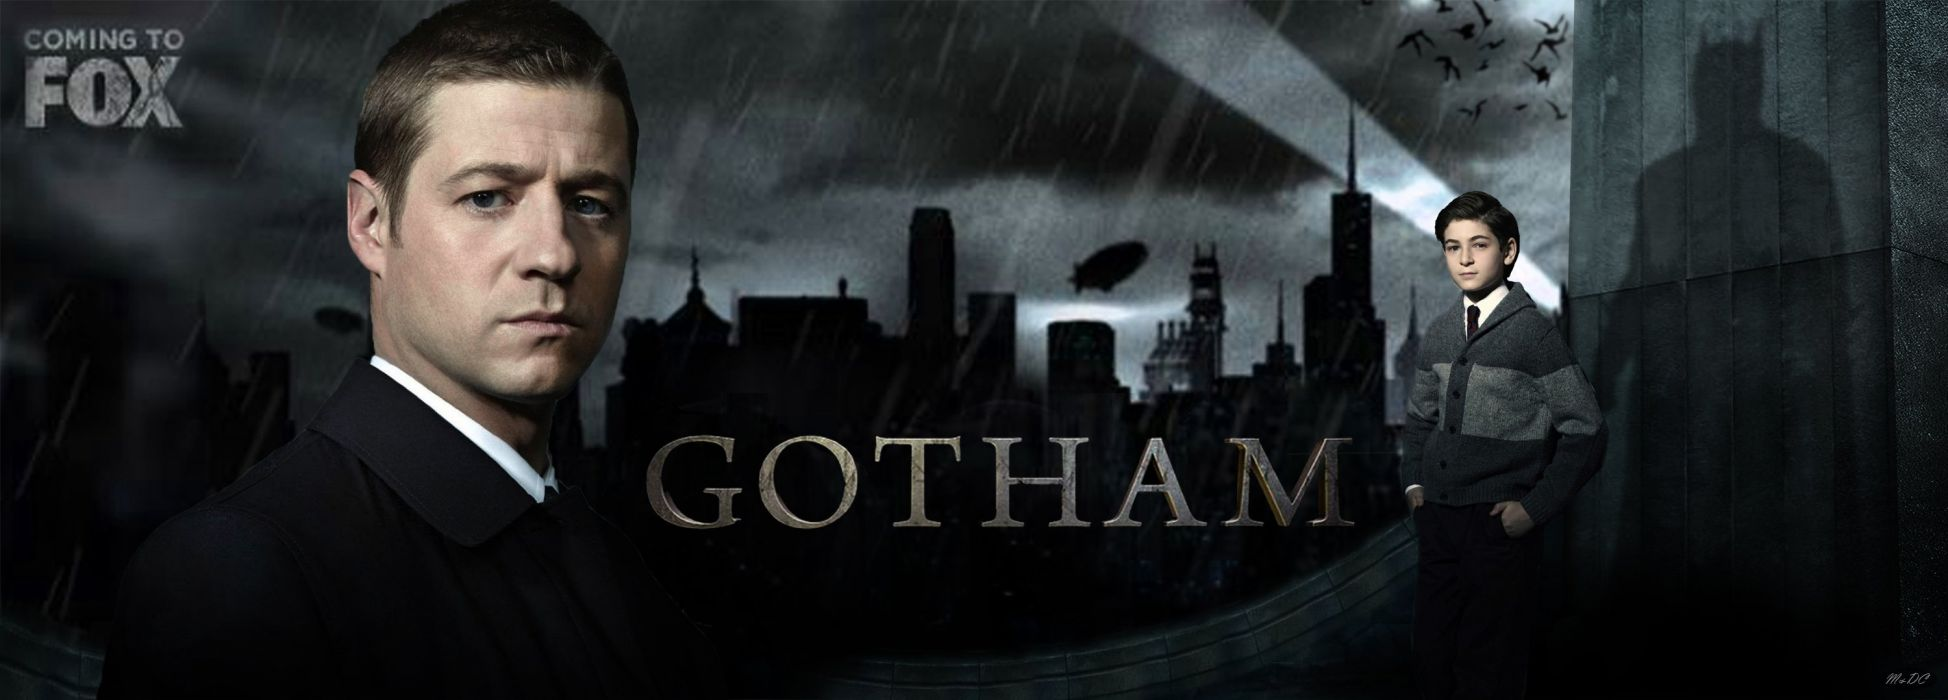 GOTHAM series batman action superhero dc-comics d-c wallpaper